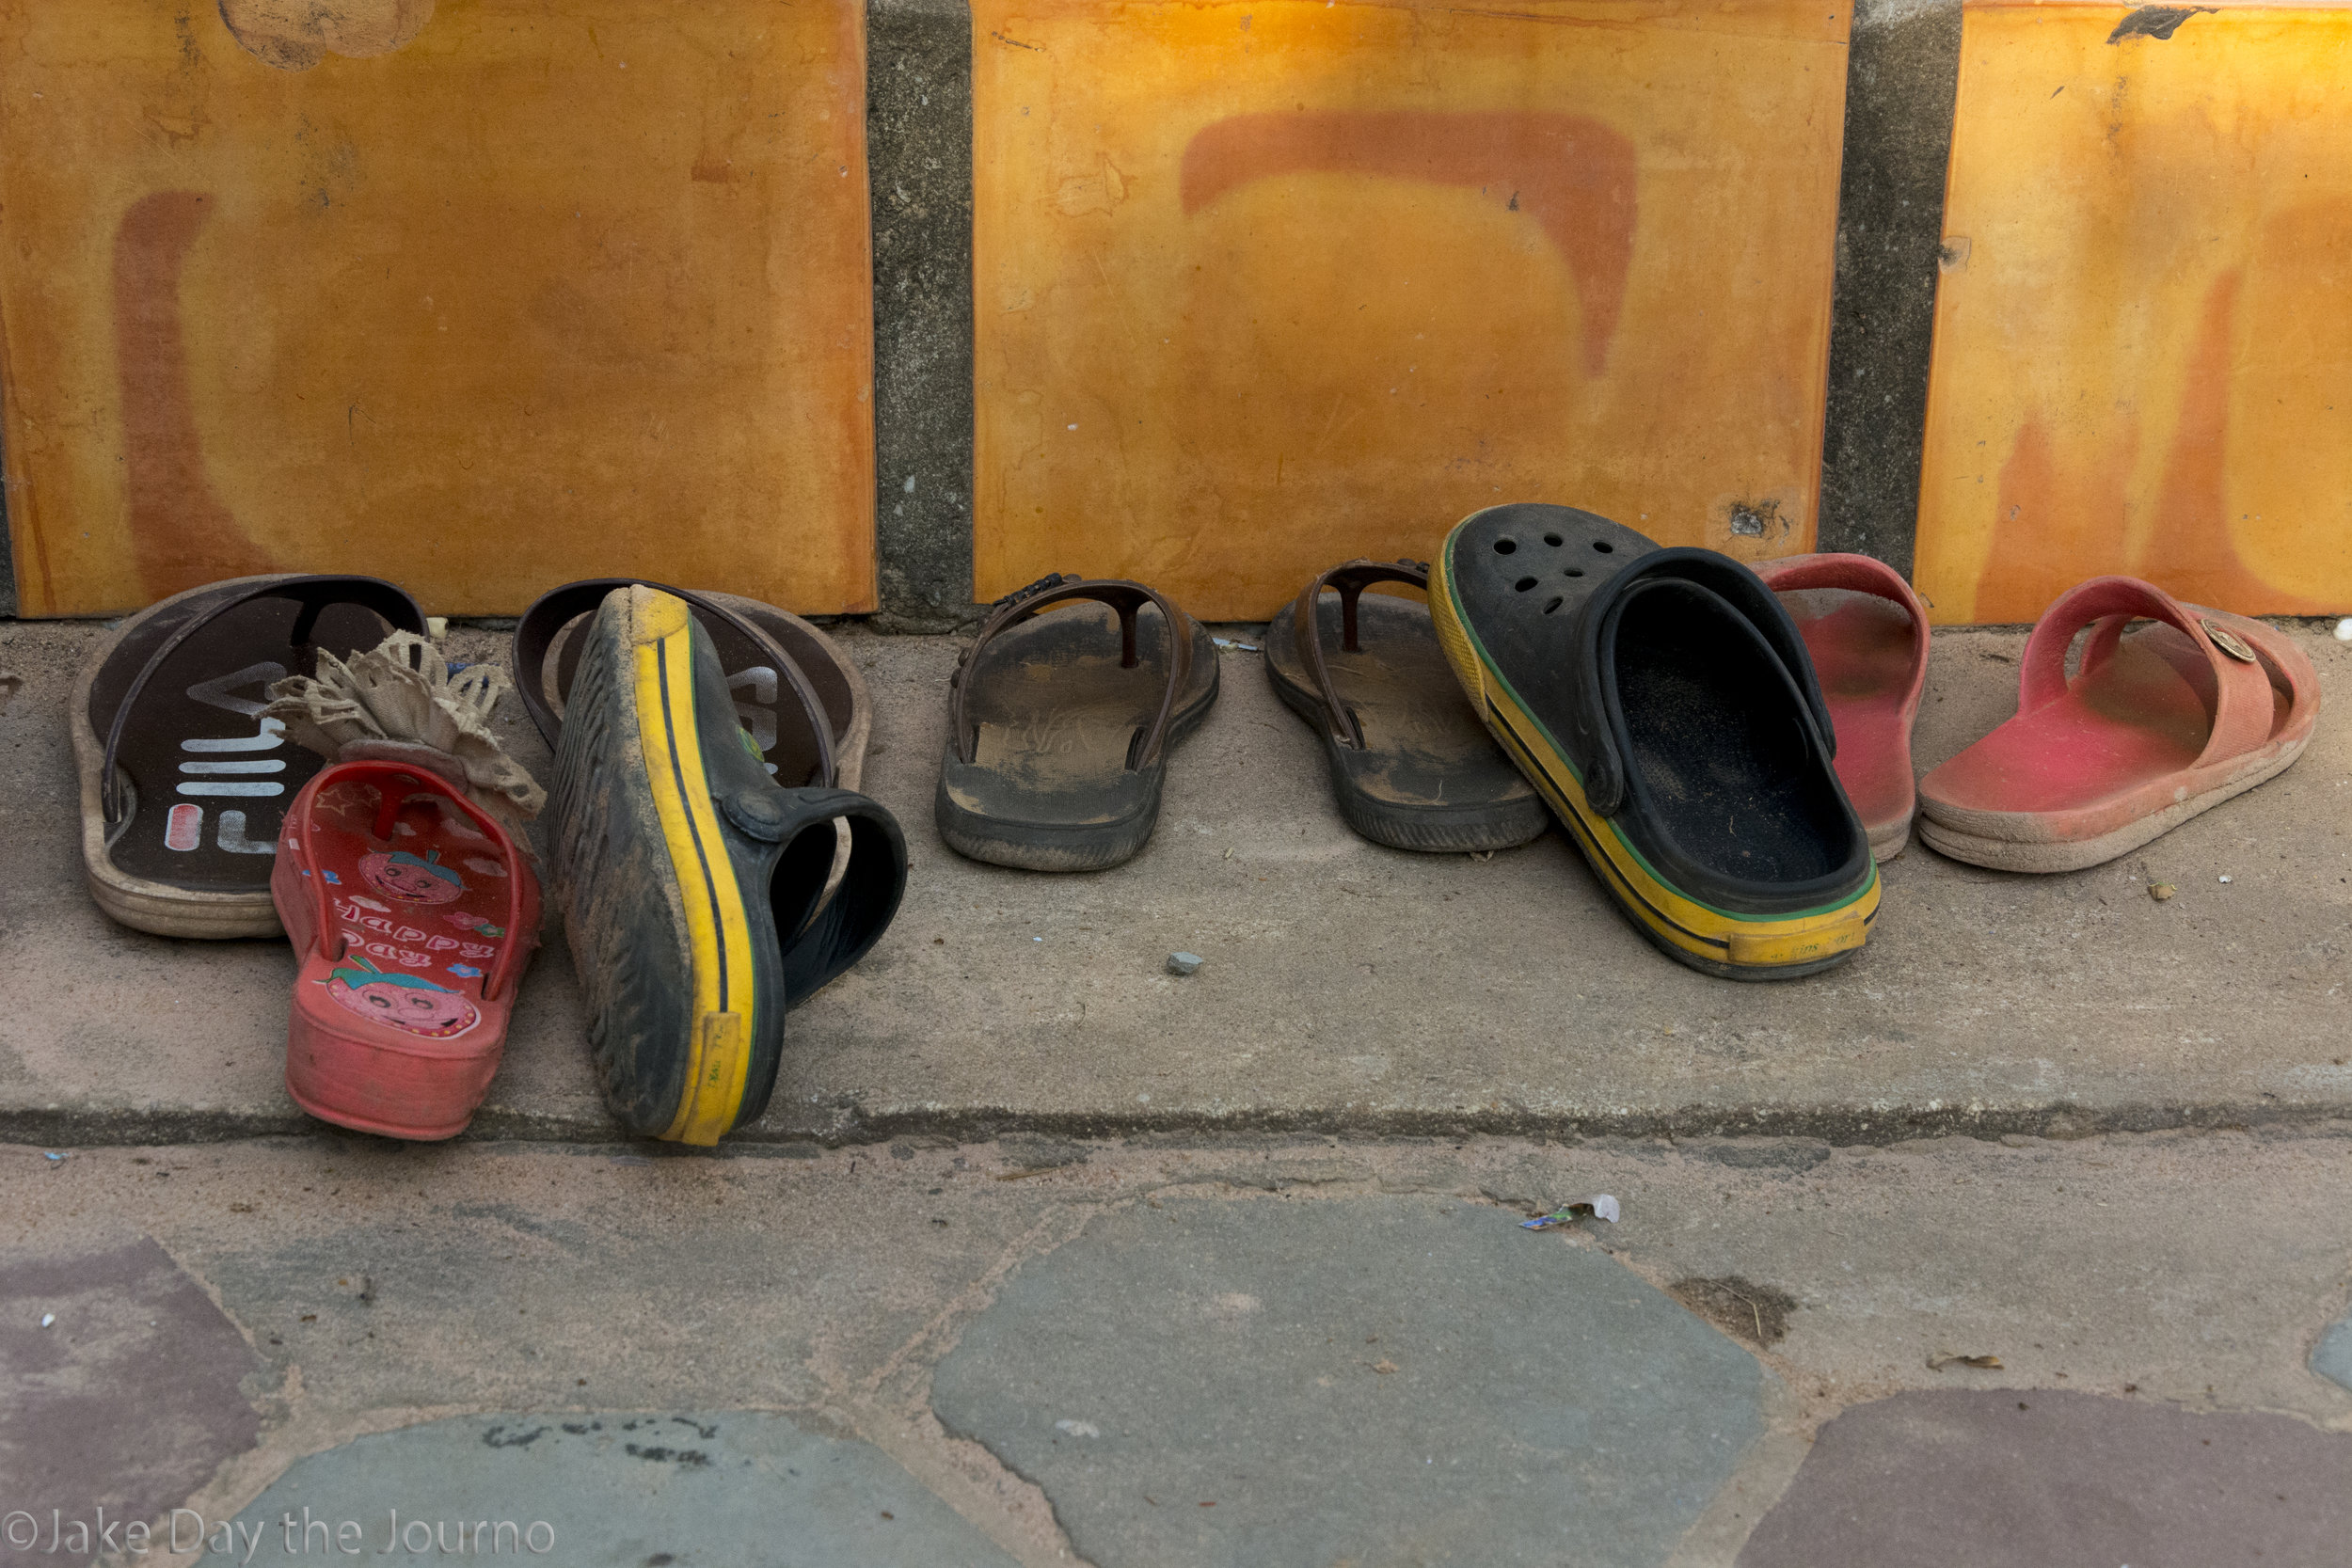 Childrens shoes line the pavement outside classrooms at Savong's School, Don Teav Village, on 25/01/18 by Jake Day.